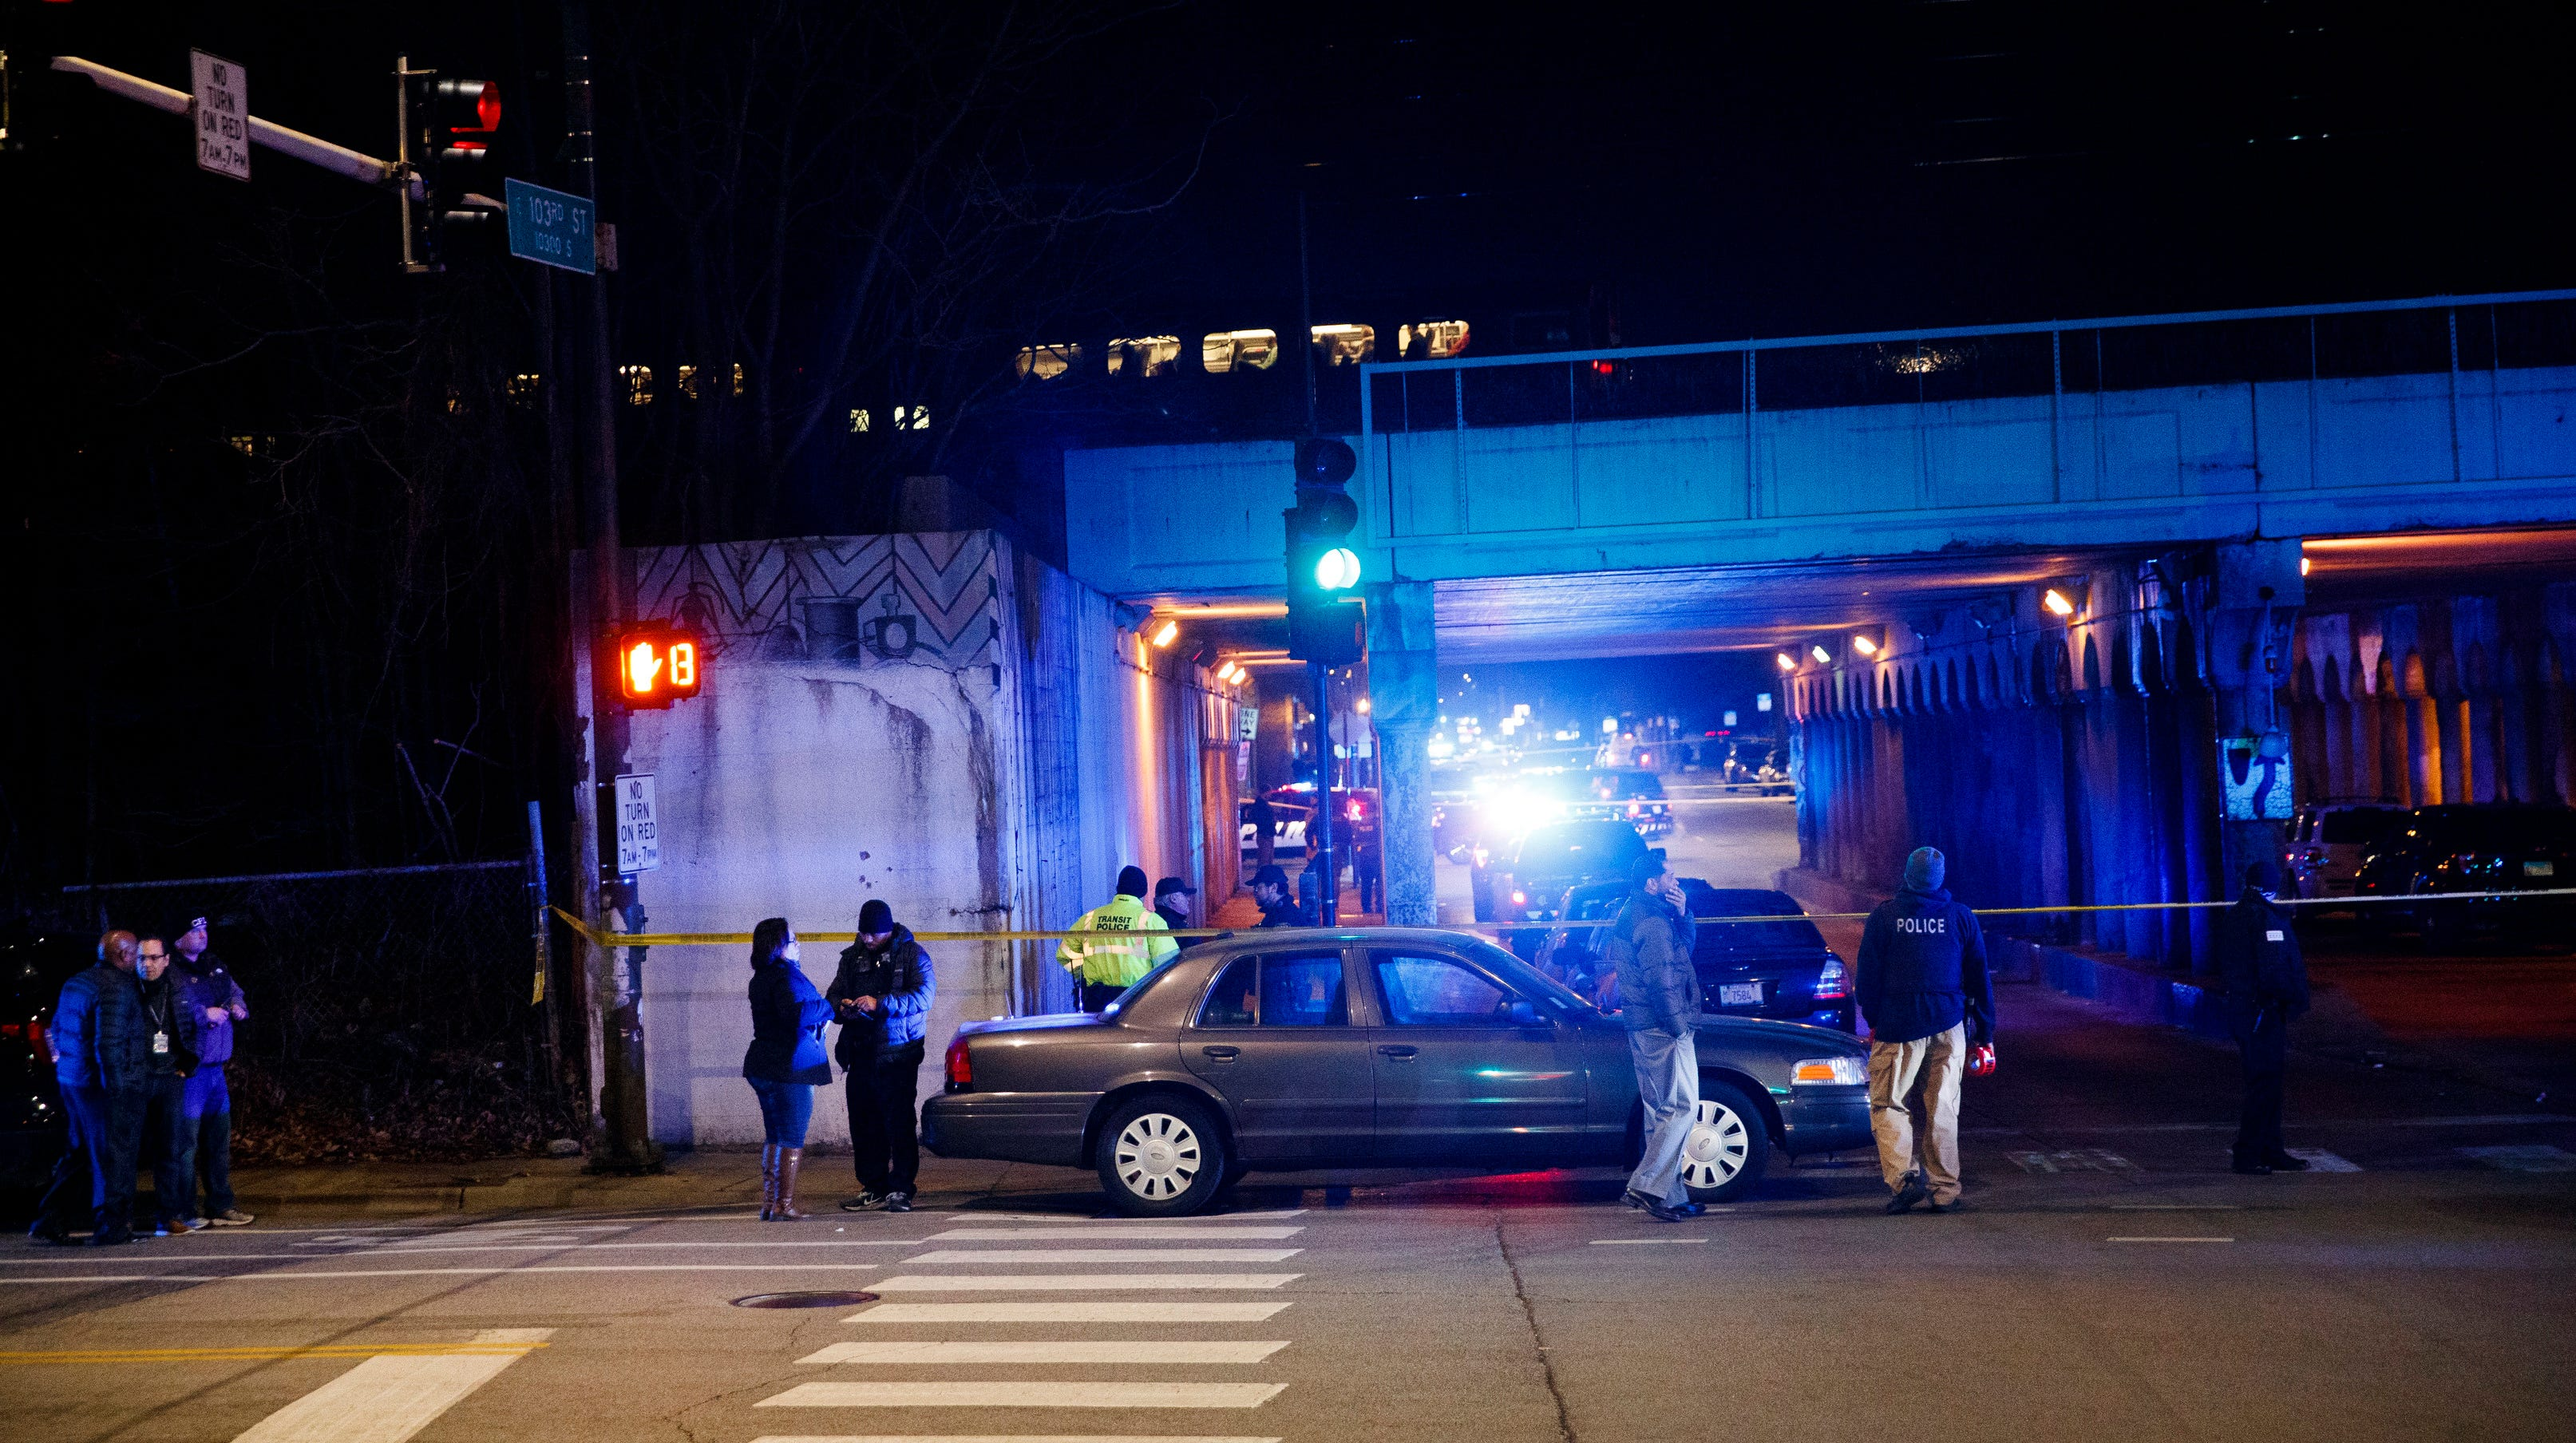 Police investigate the scene where two officers were killed after they were struck by a passenger train on Monday, Dec. 17, 2018, in Chicago. Police said the officers were investigating a shots-fired call when they were struck by gunfire. (Armando L. Sanchez/Chicago Tribune via AP) ORG XMIT: ILCHT101